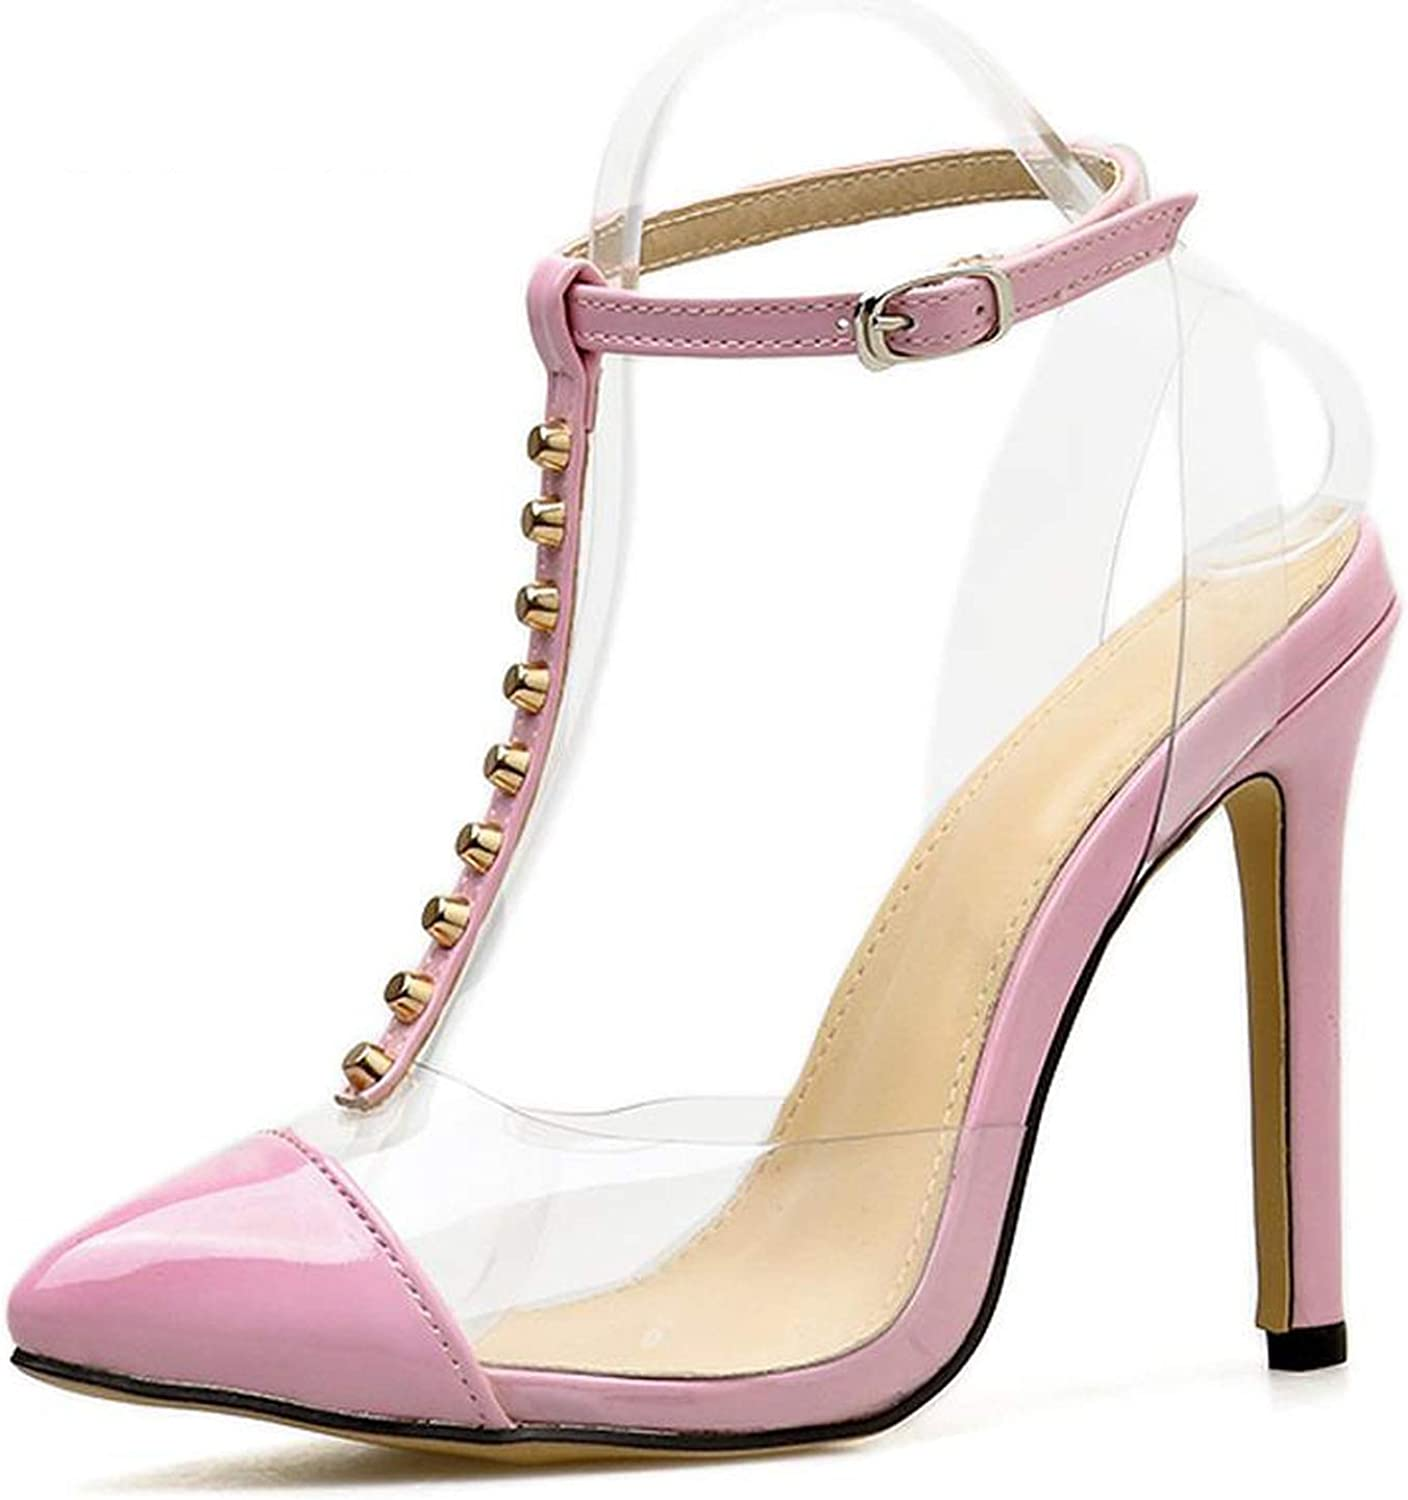 pink flowers Women Pumps Leopard shoes High Heels Sexy Pointed Toes shoes Stiletto Heel Office Lady Dress Heels